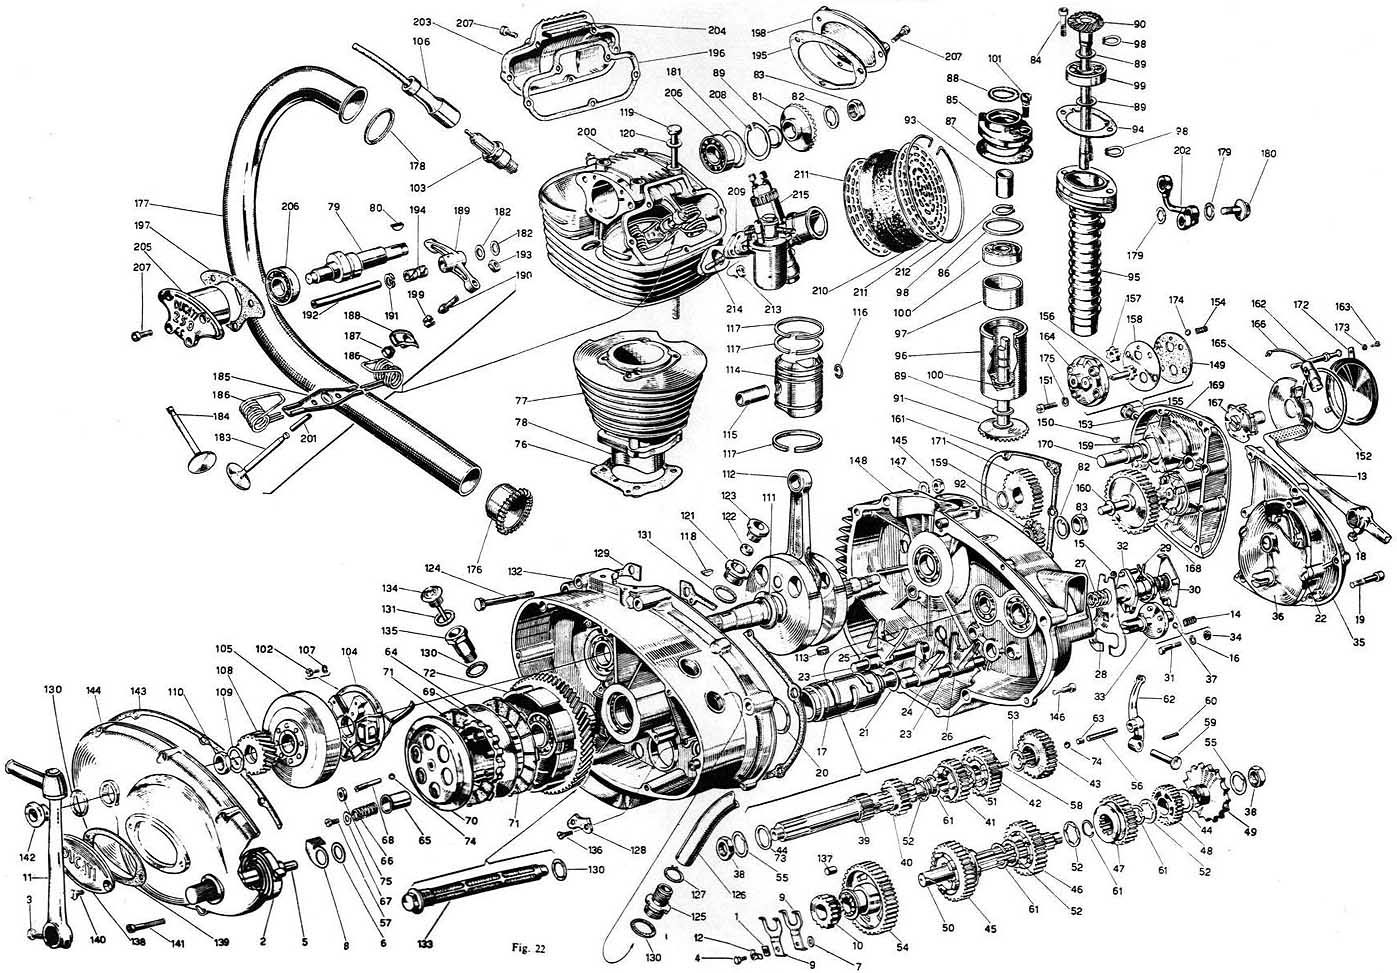 medium resolution of ducati engine schematic cutaway diagrams motorcycle engine ducati engine diagrams